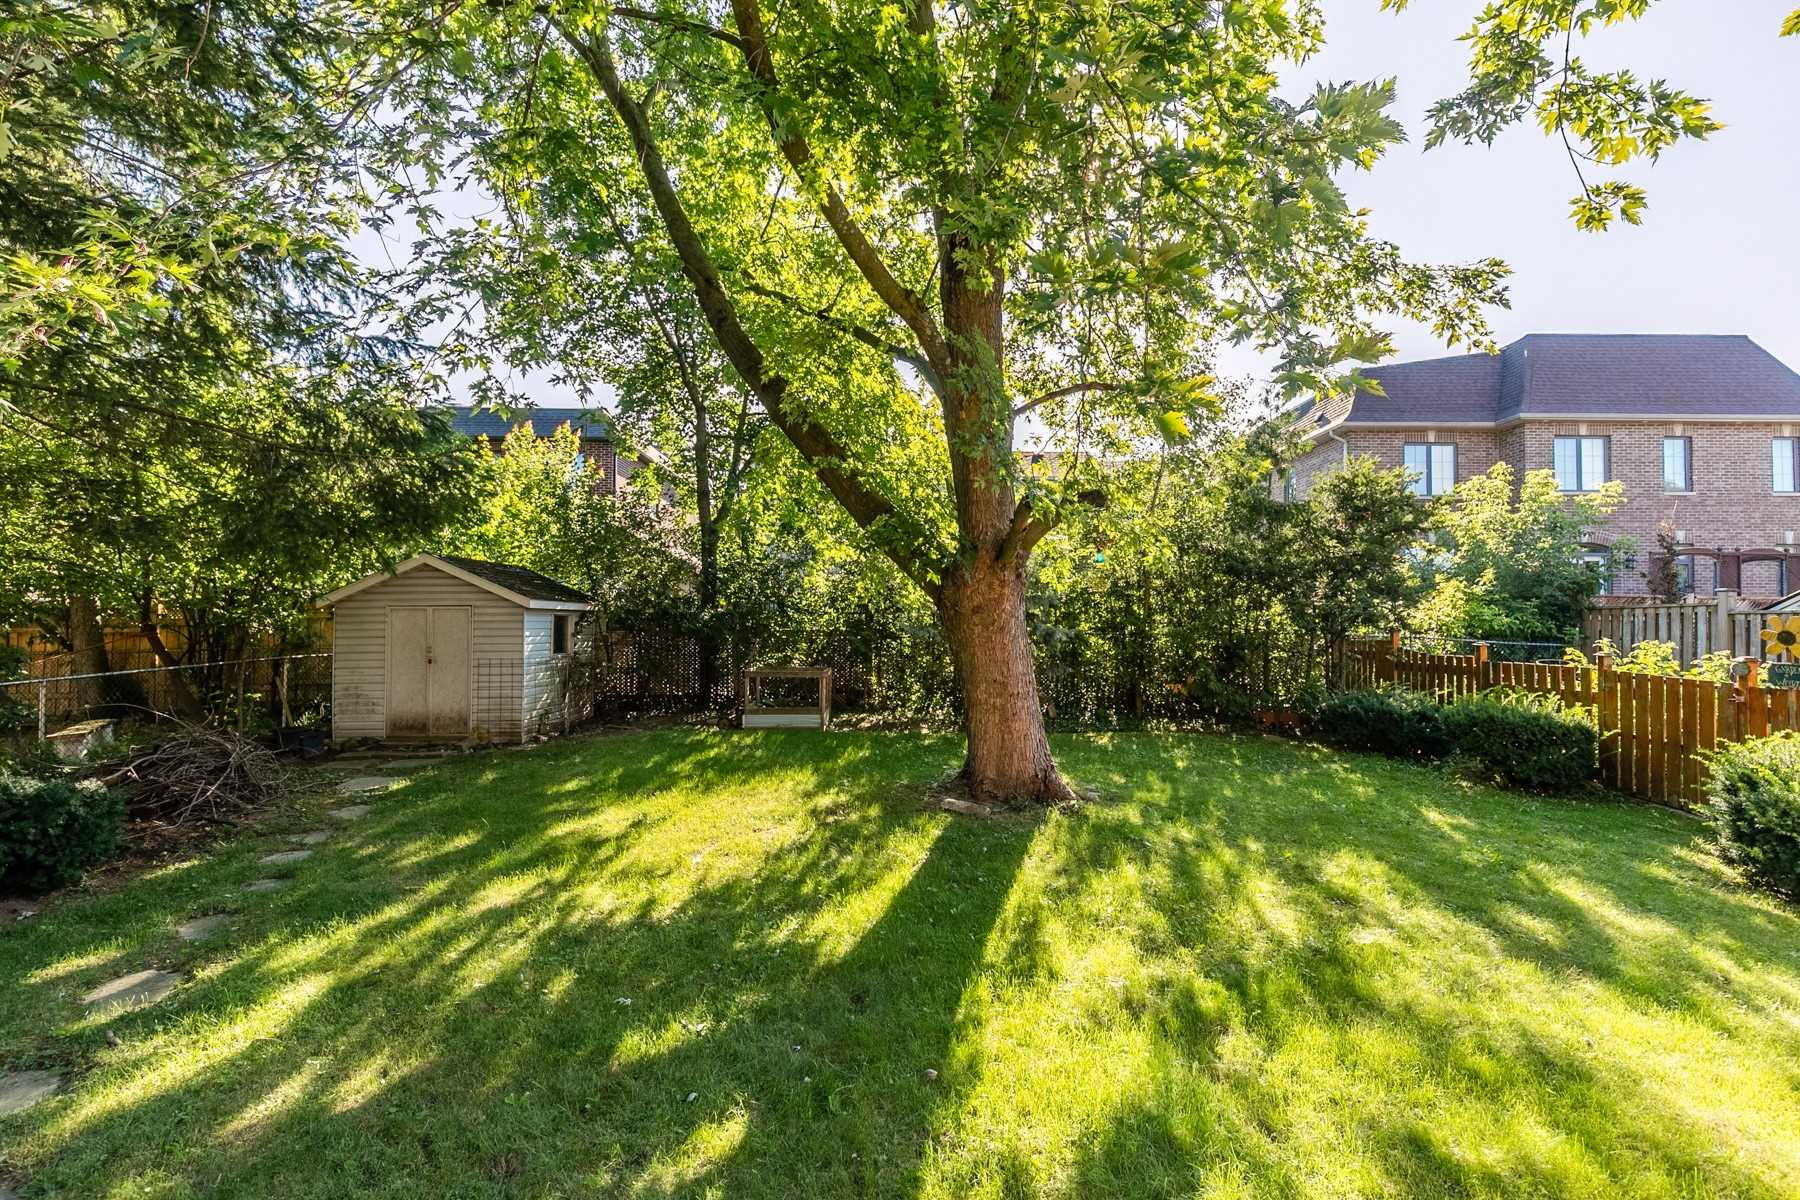 Detached house For Sale In Richmond Hill - 6 Wendy Way, Richmond Hill, Ontario, Canada L4E2V6 , 3 Bedrooms Bedrooms, ,2 BathroomsBathrooms,Detached,For Sale,Wendy